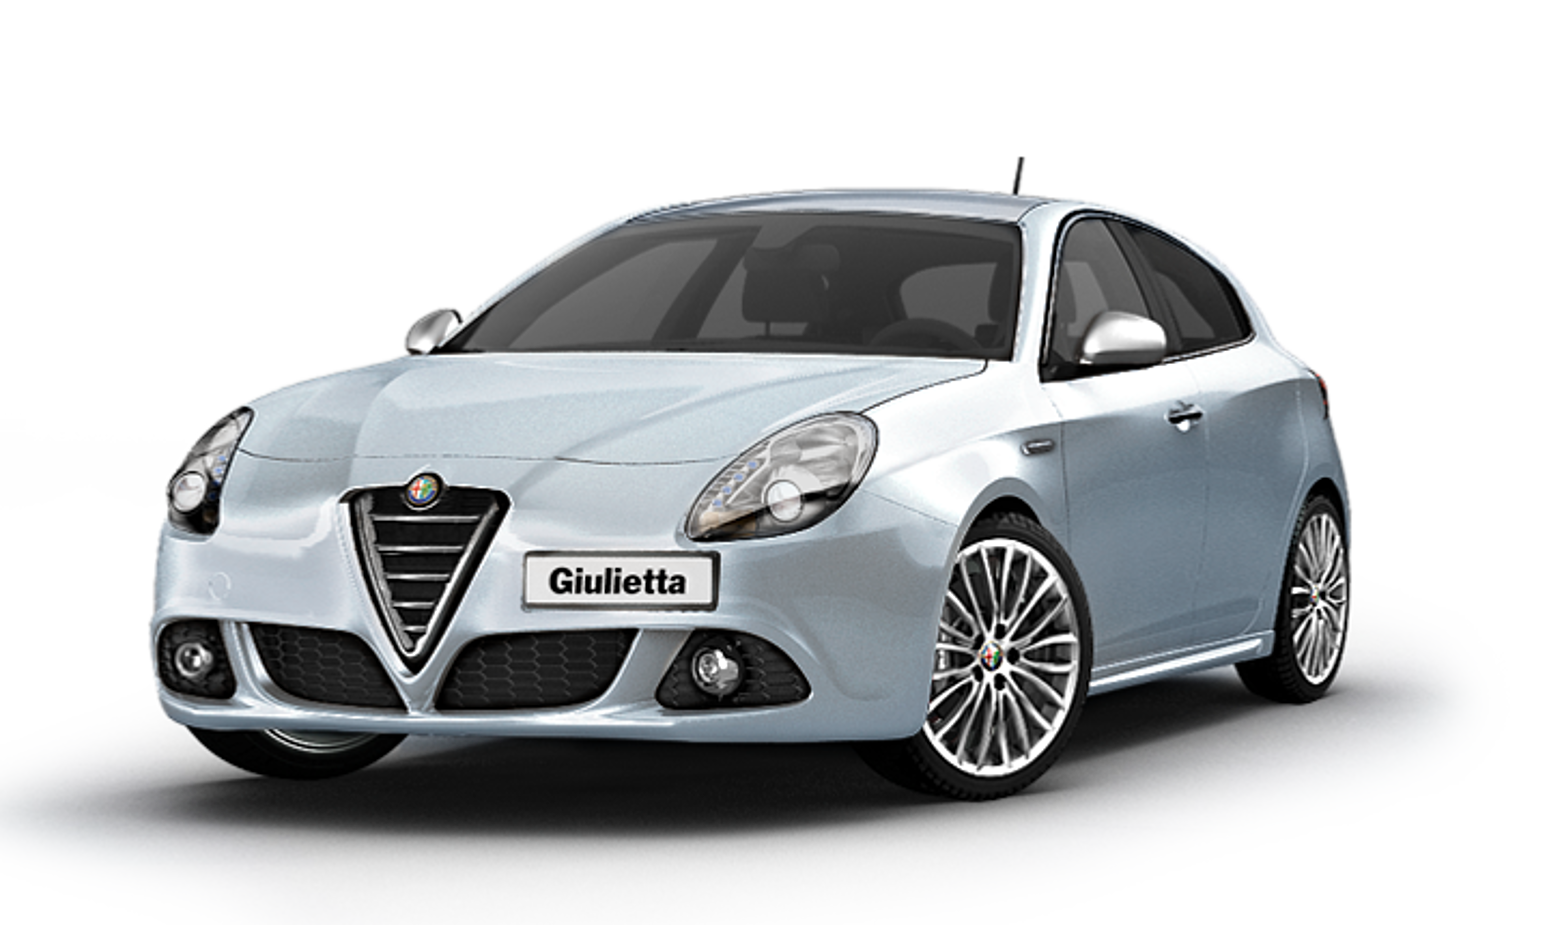 Alfa Romeo Giulietta Car Stylish Design Transparent 26748